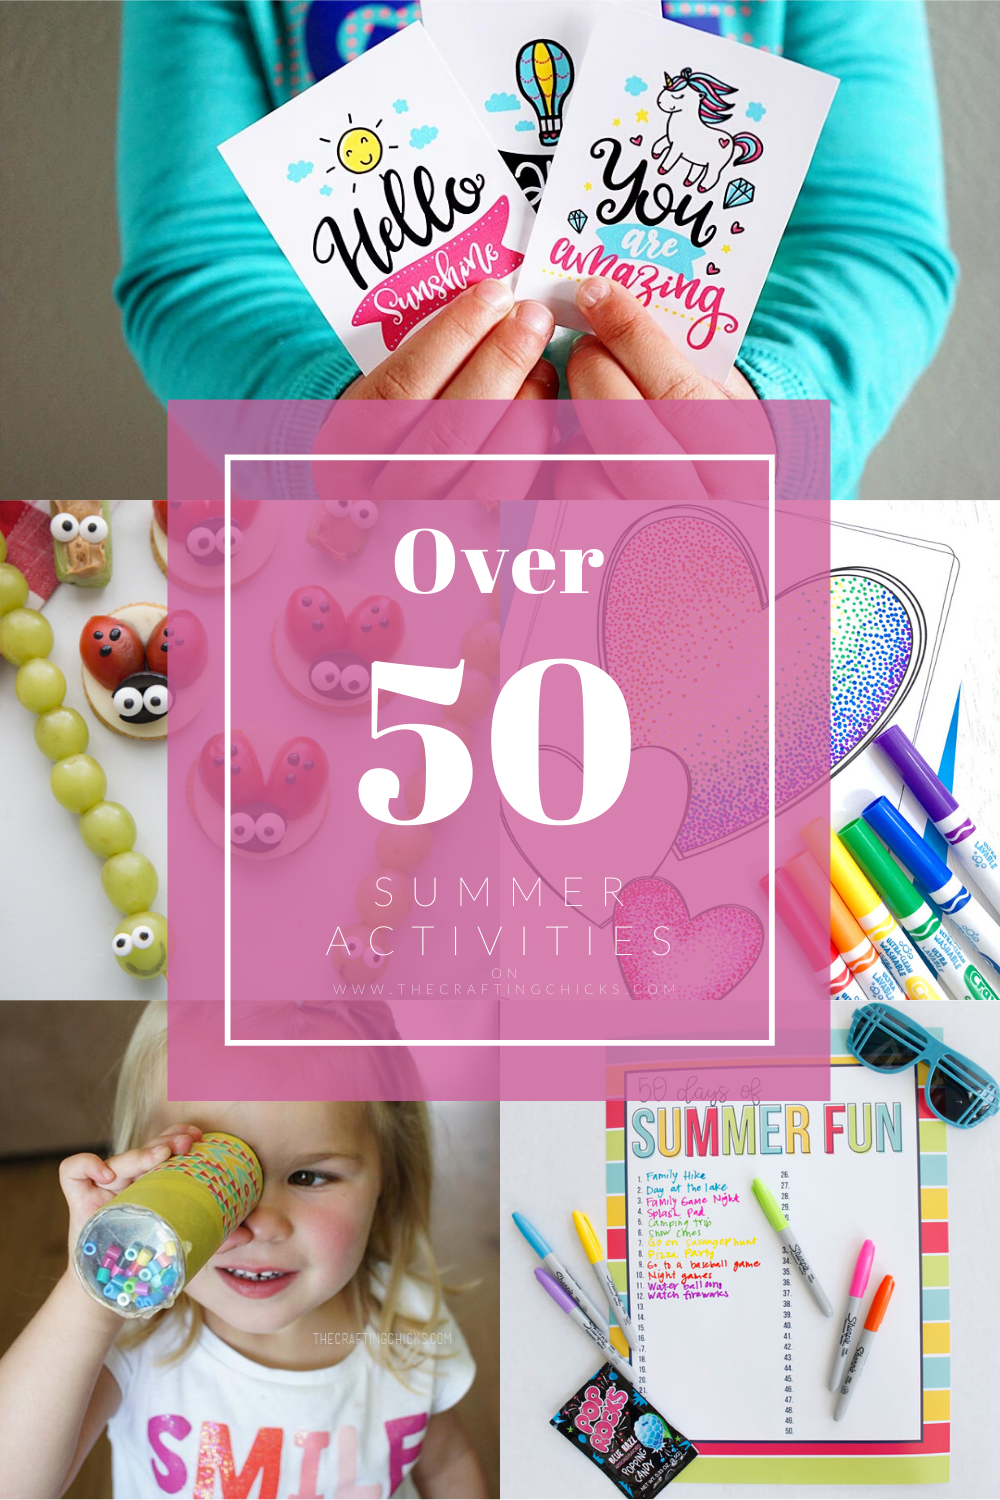 Collage for Over 50 Summer Activities